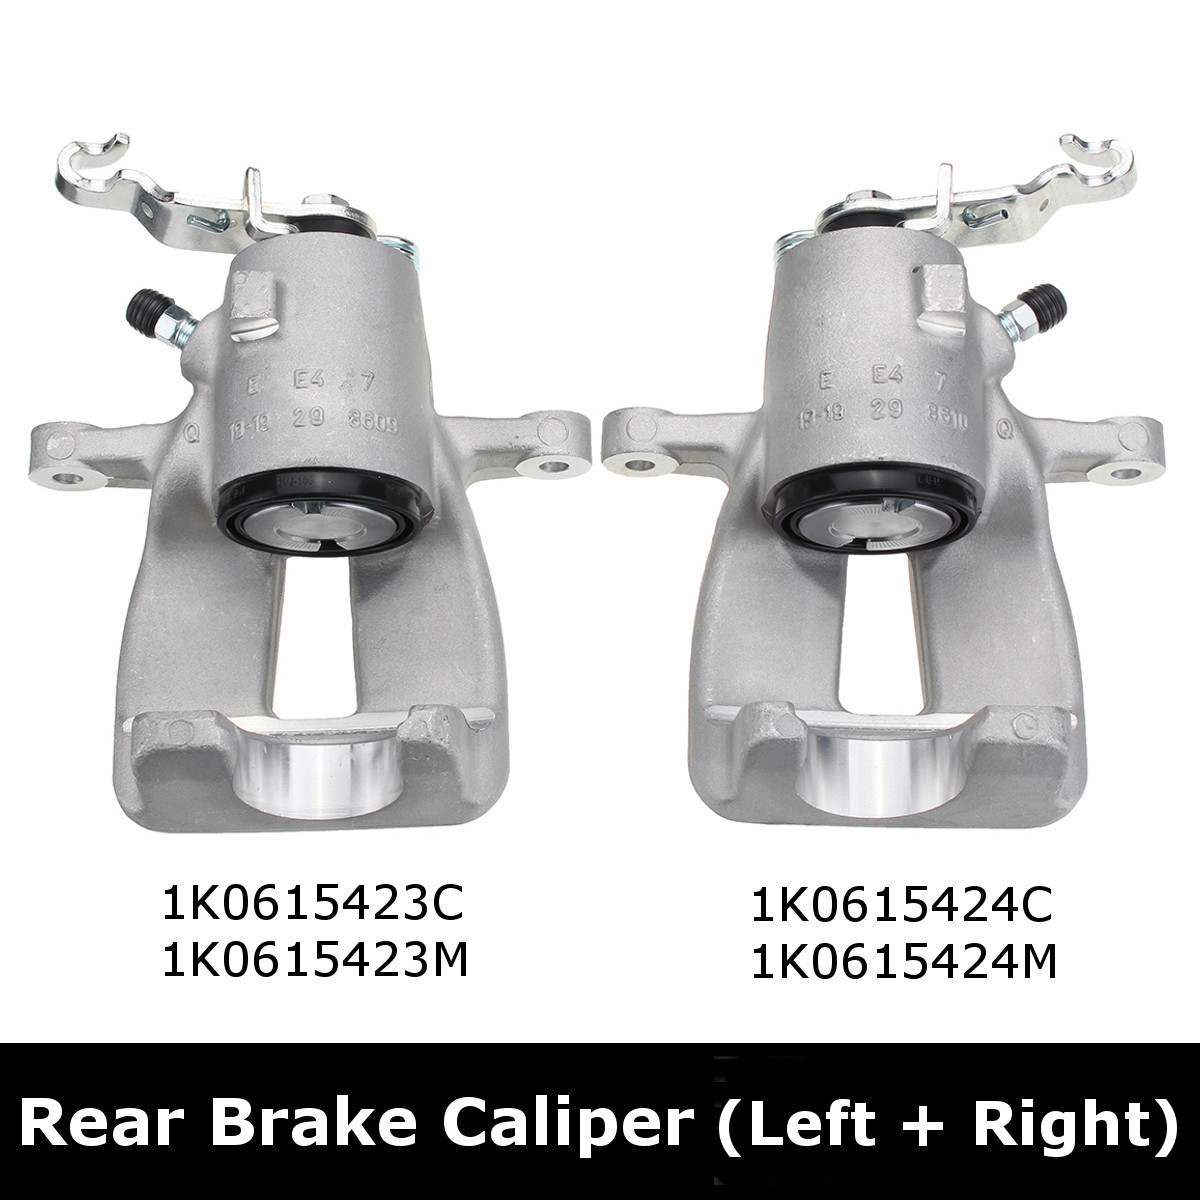 Brake Caliper Rear Left+Right For Audi A3 TT SEAT /SKODA For VW Eos Golf 5 6 Jetta TOURANBrake Caliper Rear Left+Right For Audi A3 TT SEAT /SKODA For VW Eos Golf 5 6 Jetta TOURAN